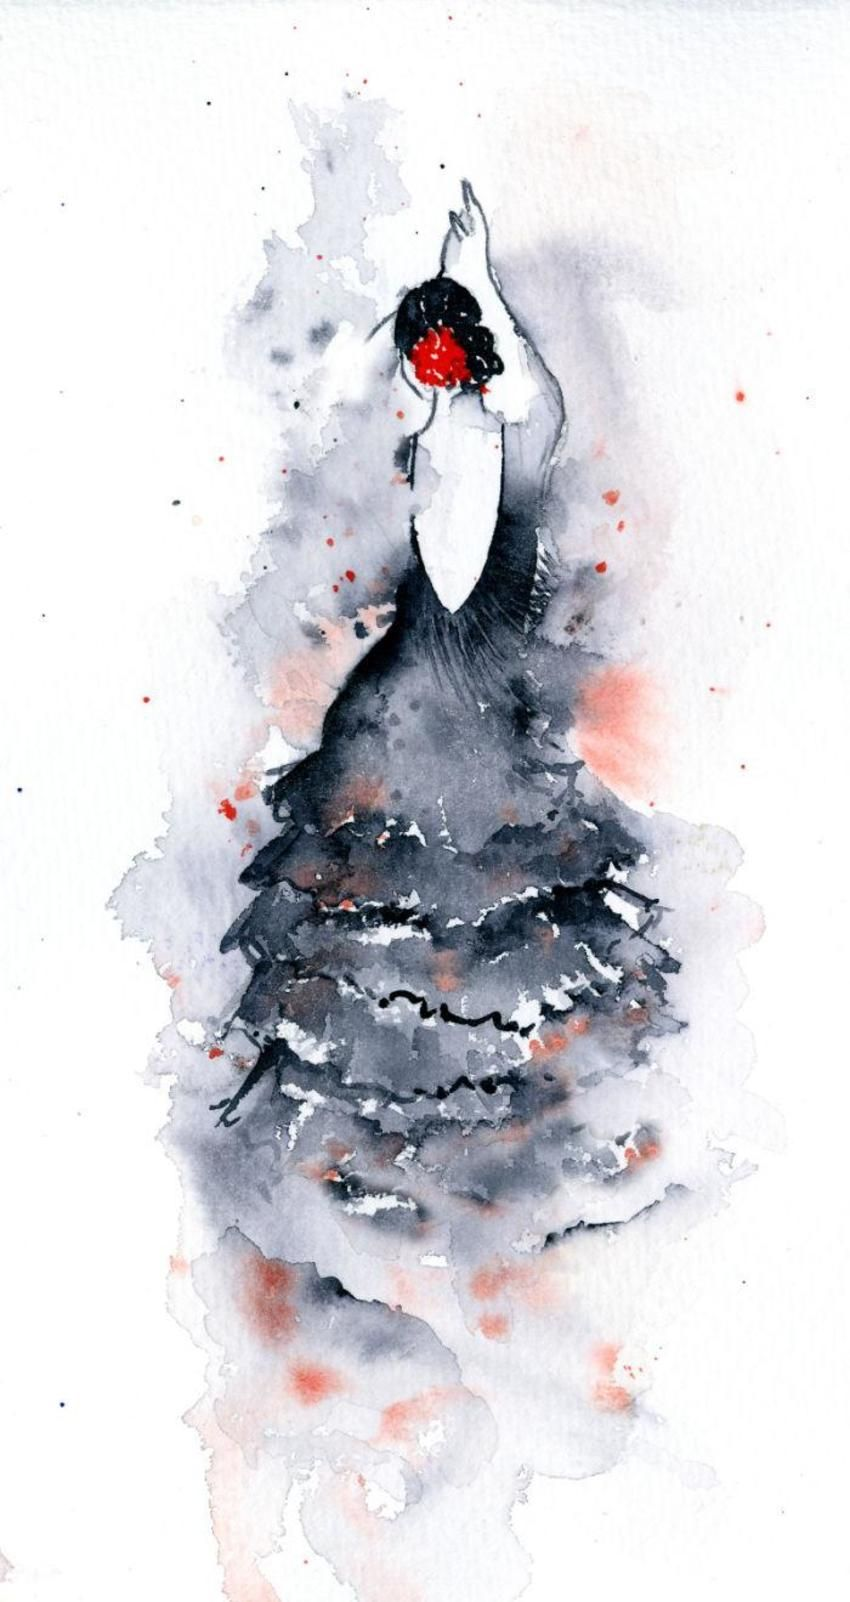 Flamenco 2 Aquarelle Danseuse De Flamenco Et Illustration D